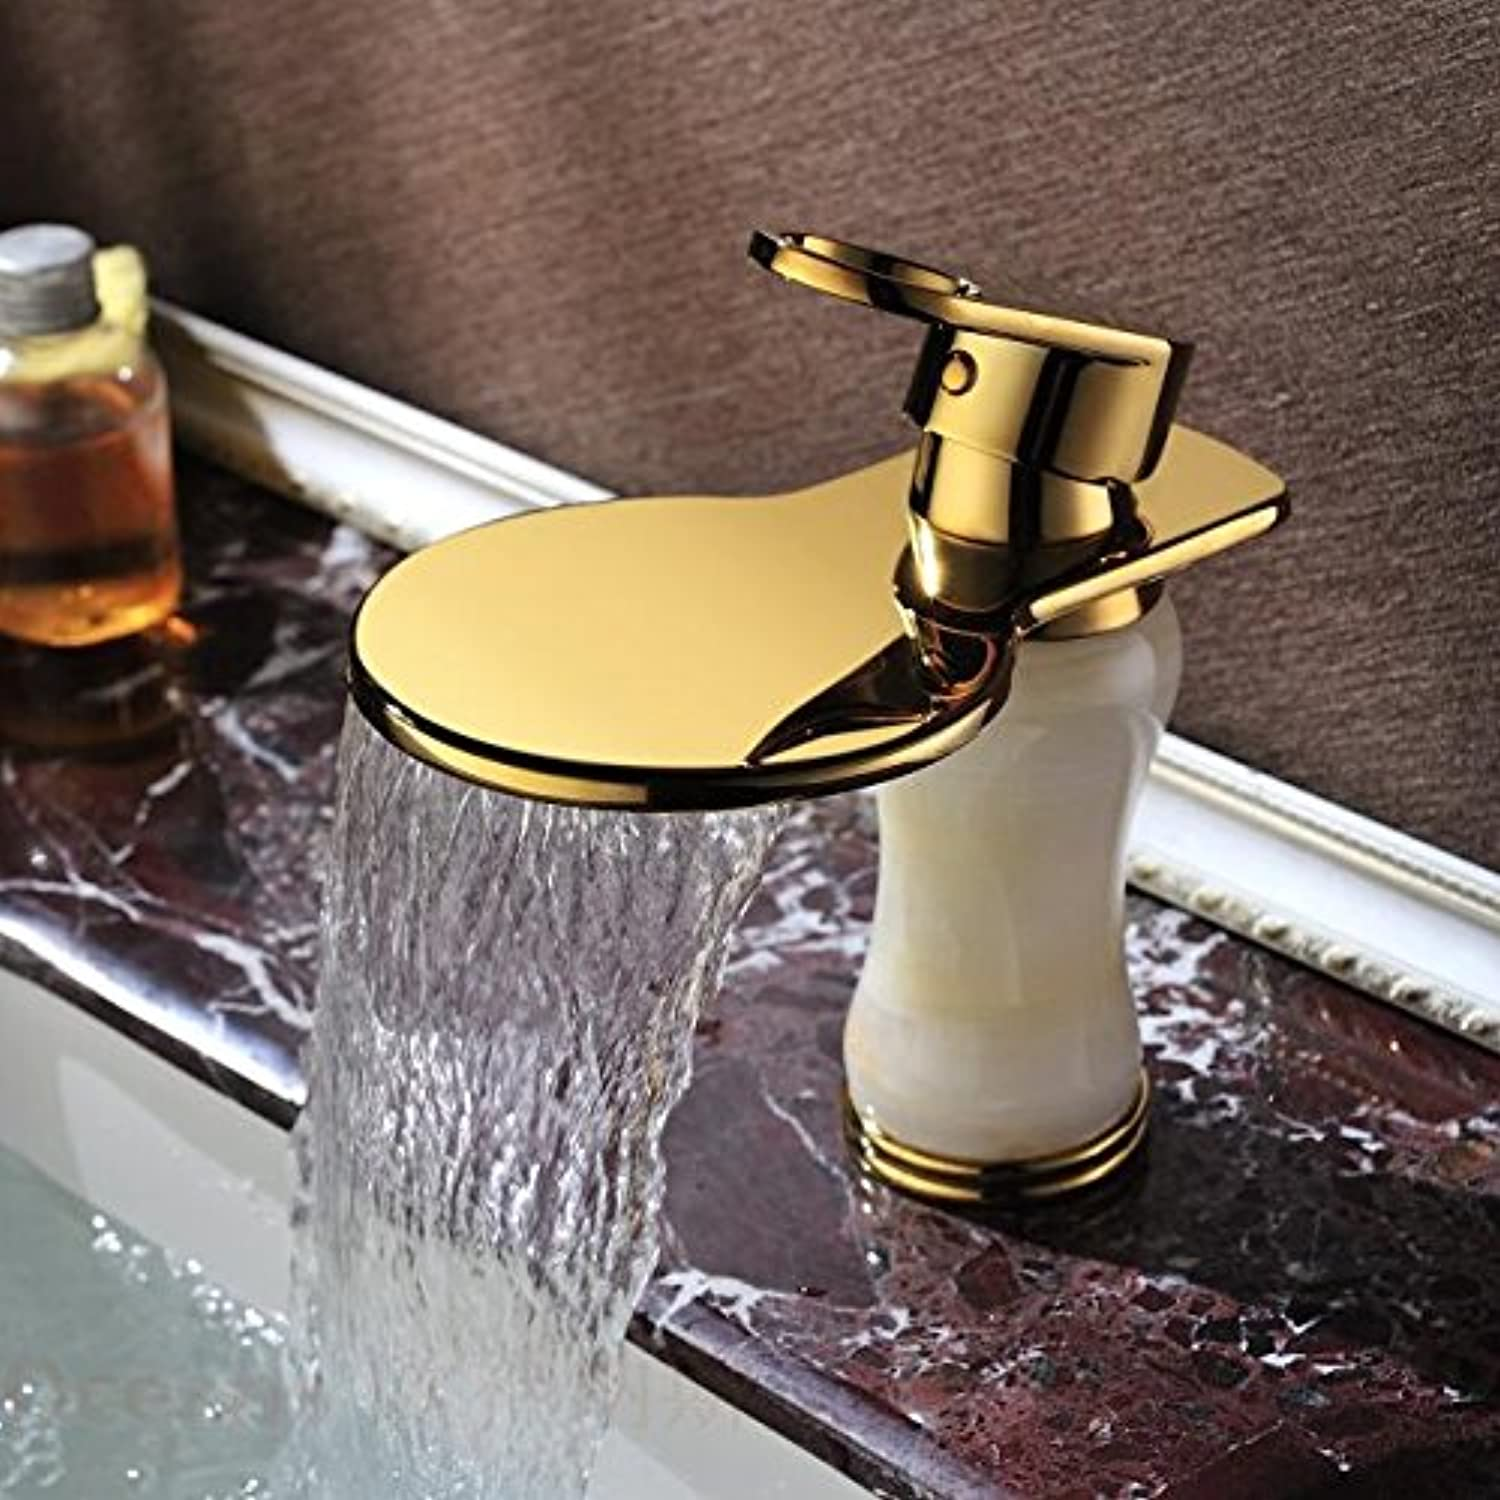 Gyps Faucet Basin Mixer Tap Waterfall Faucet Antique Bathroom Mixer Bar Mixer Shower Set Tap antique bathroom faucet Pseudo-classic marble gold plated waterfall faucet hot and cold full copper natural